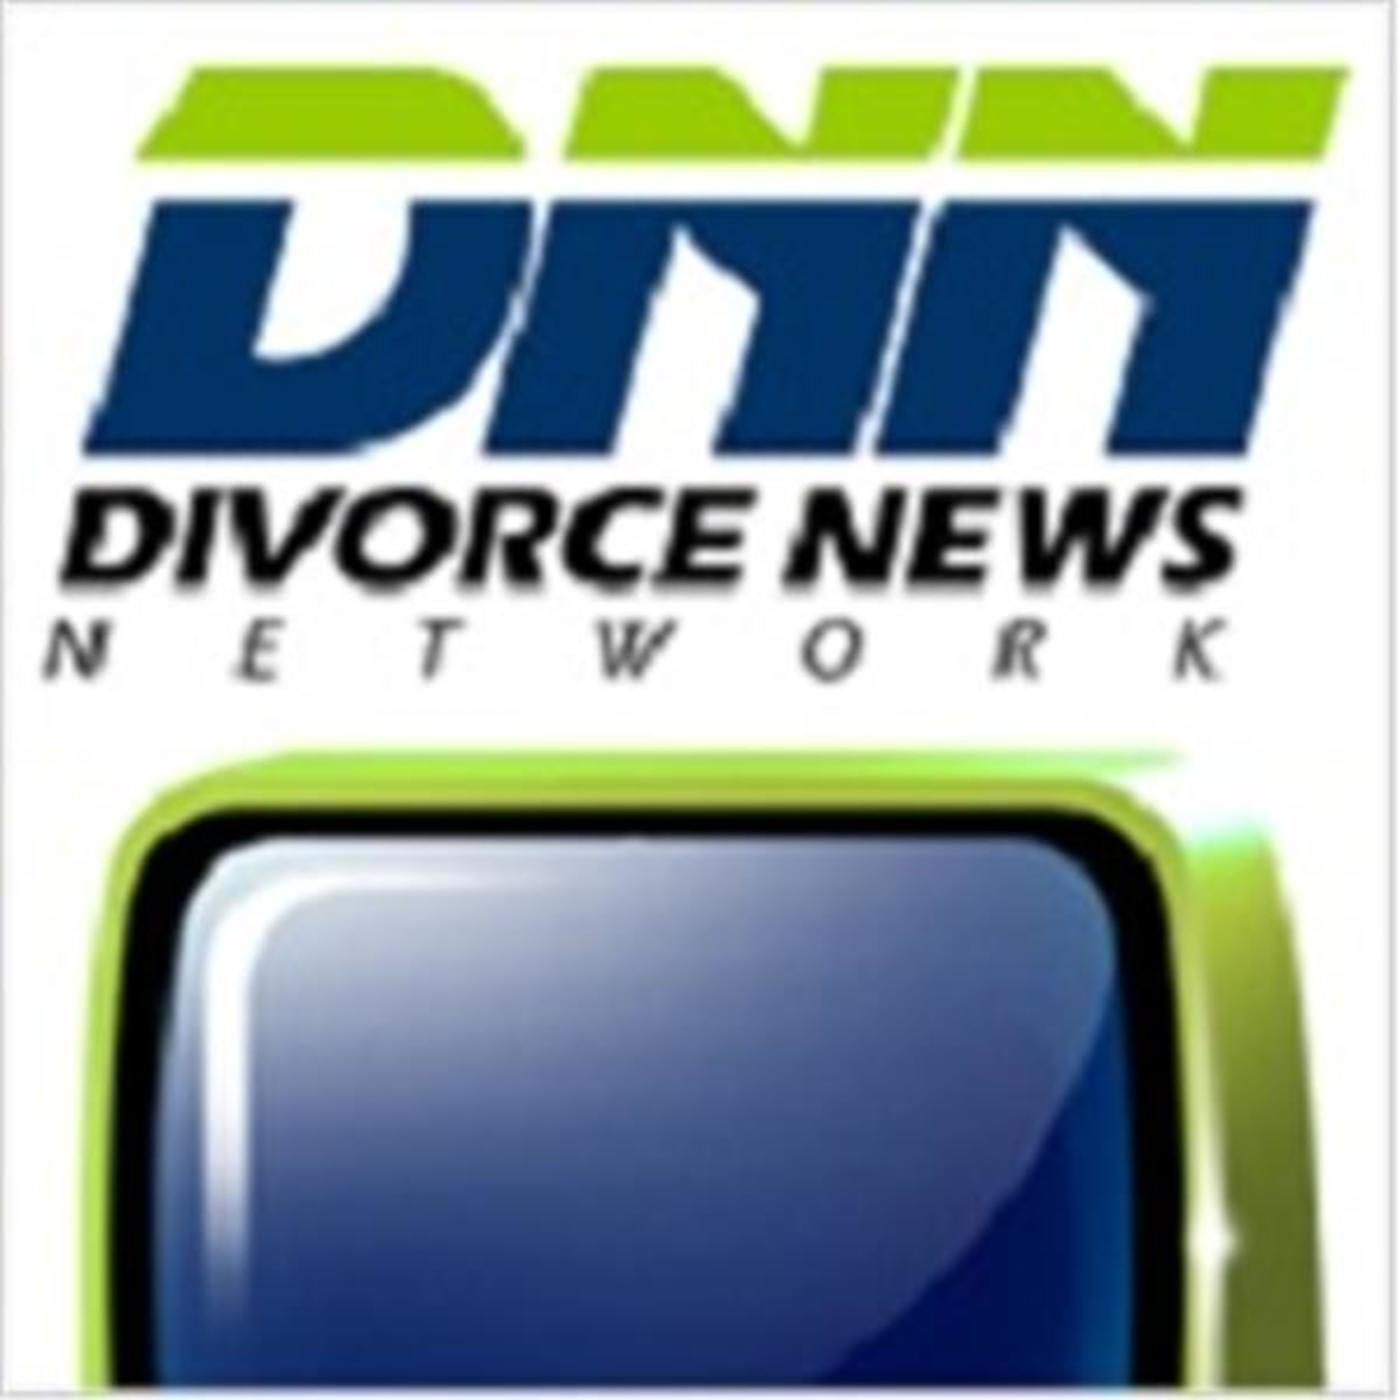 Divorce News Network